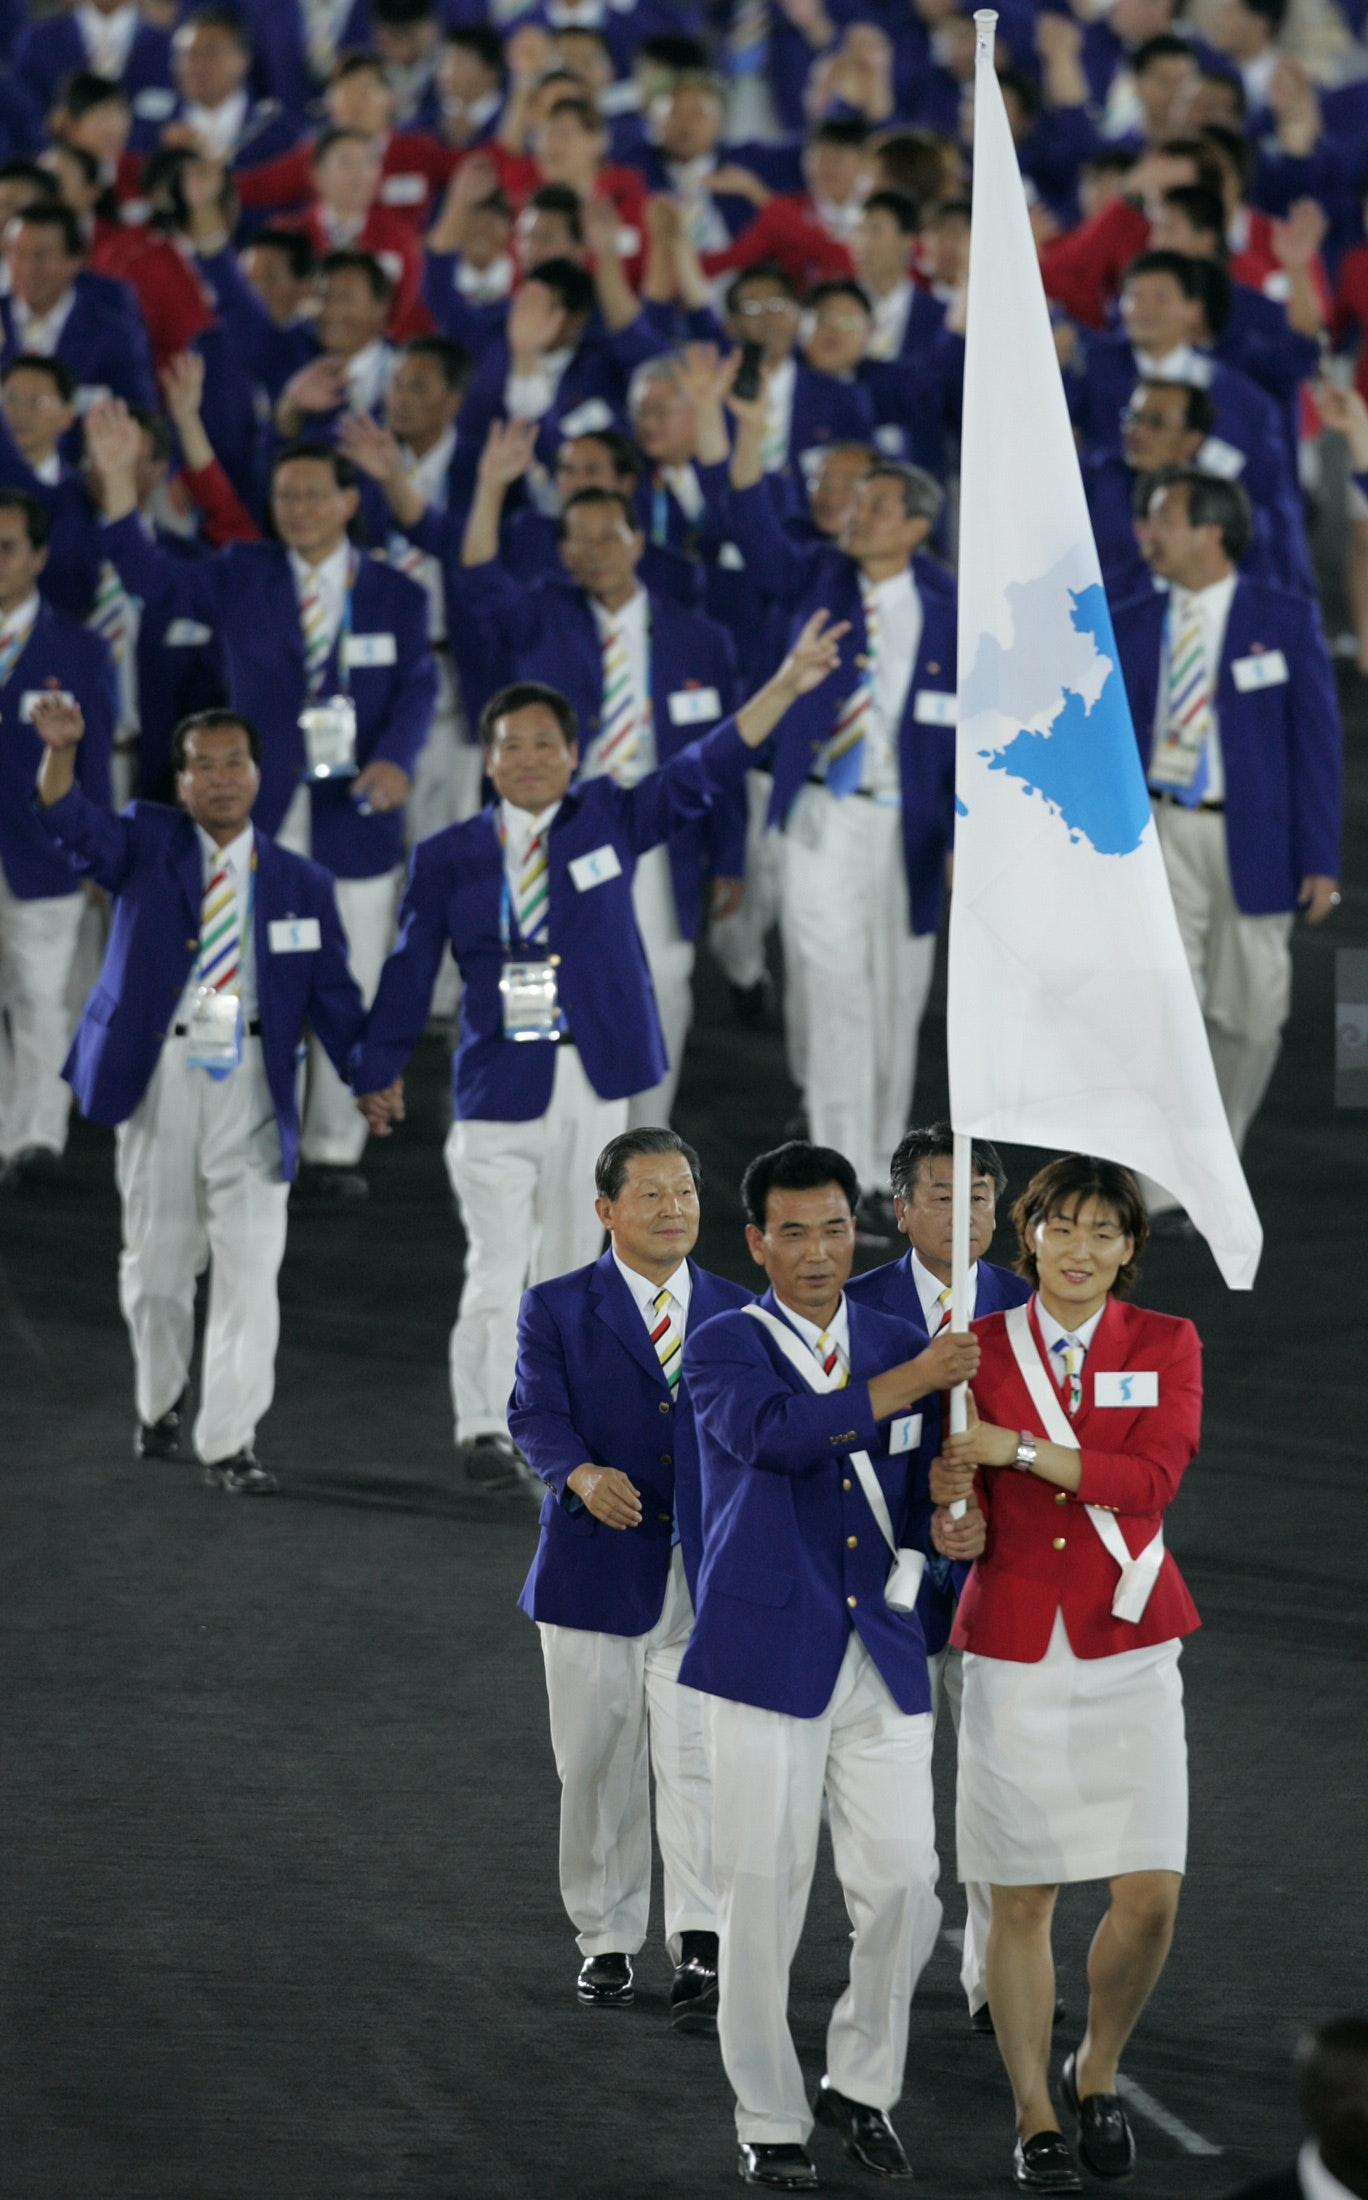 The Winter Olympics and the two Koreas: how sport diplomacy could save the world